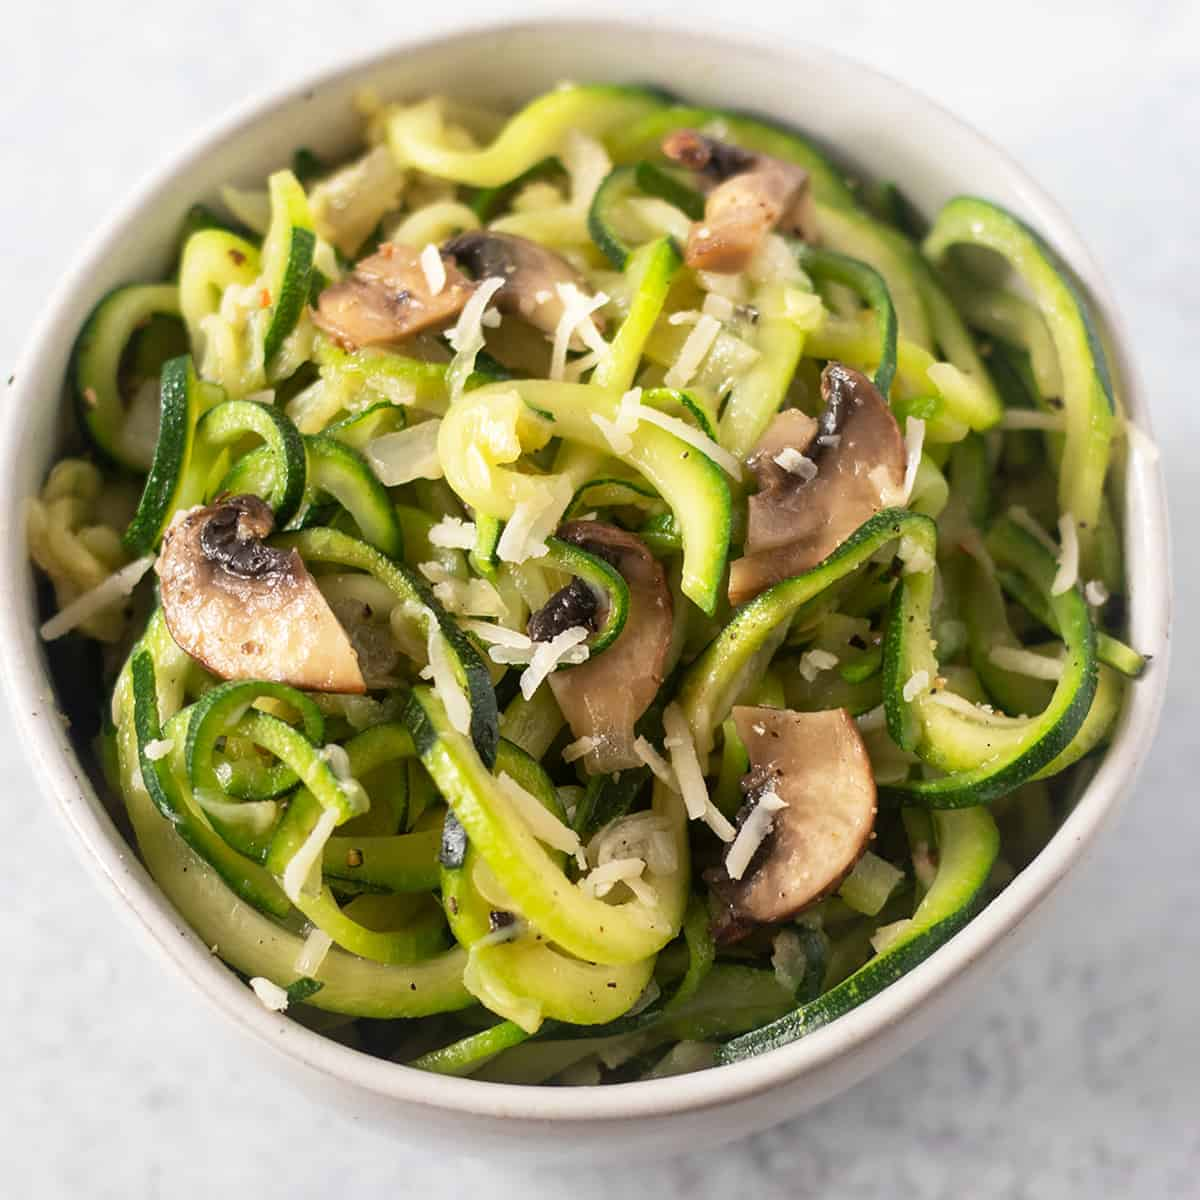 Zucchini Noodles in a bowl